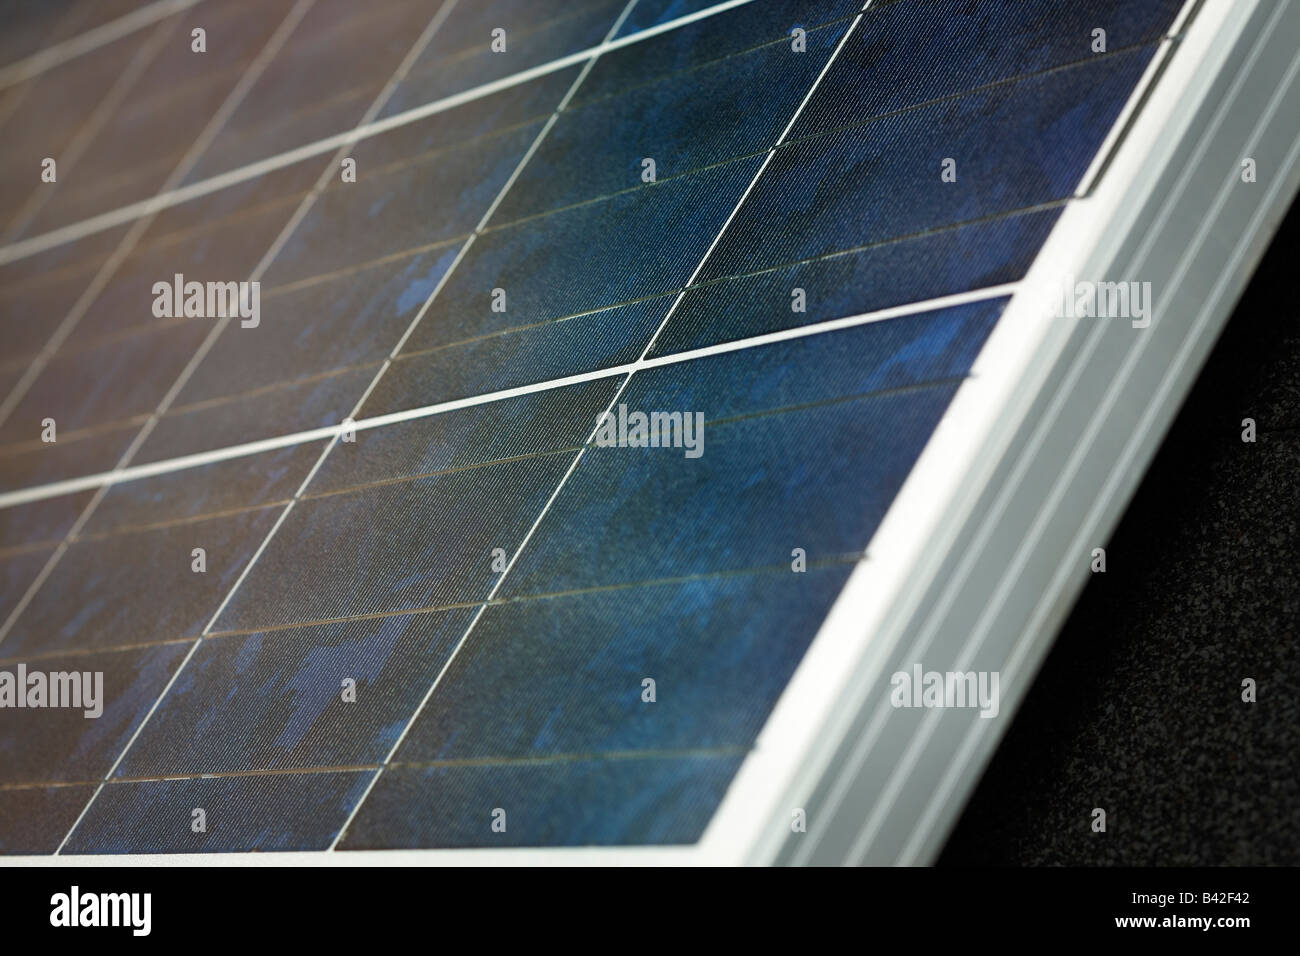 A closeup detail shot of a photovoltaic PV solar panel. - Stock Image